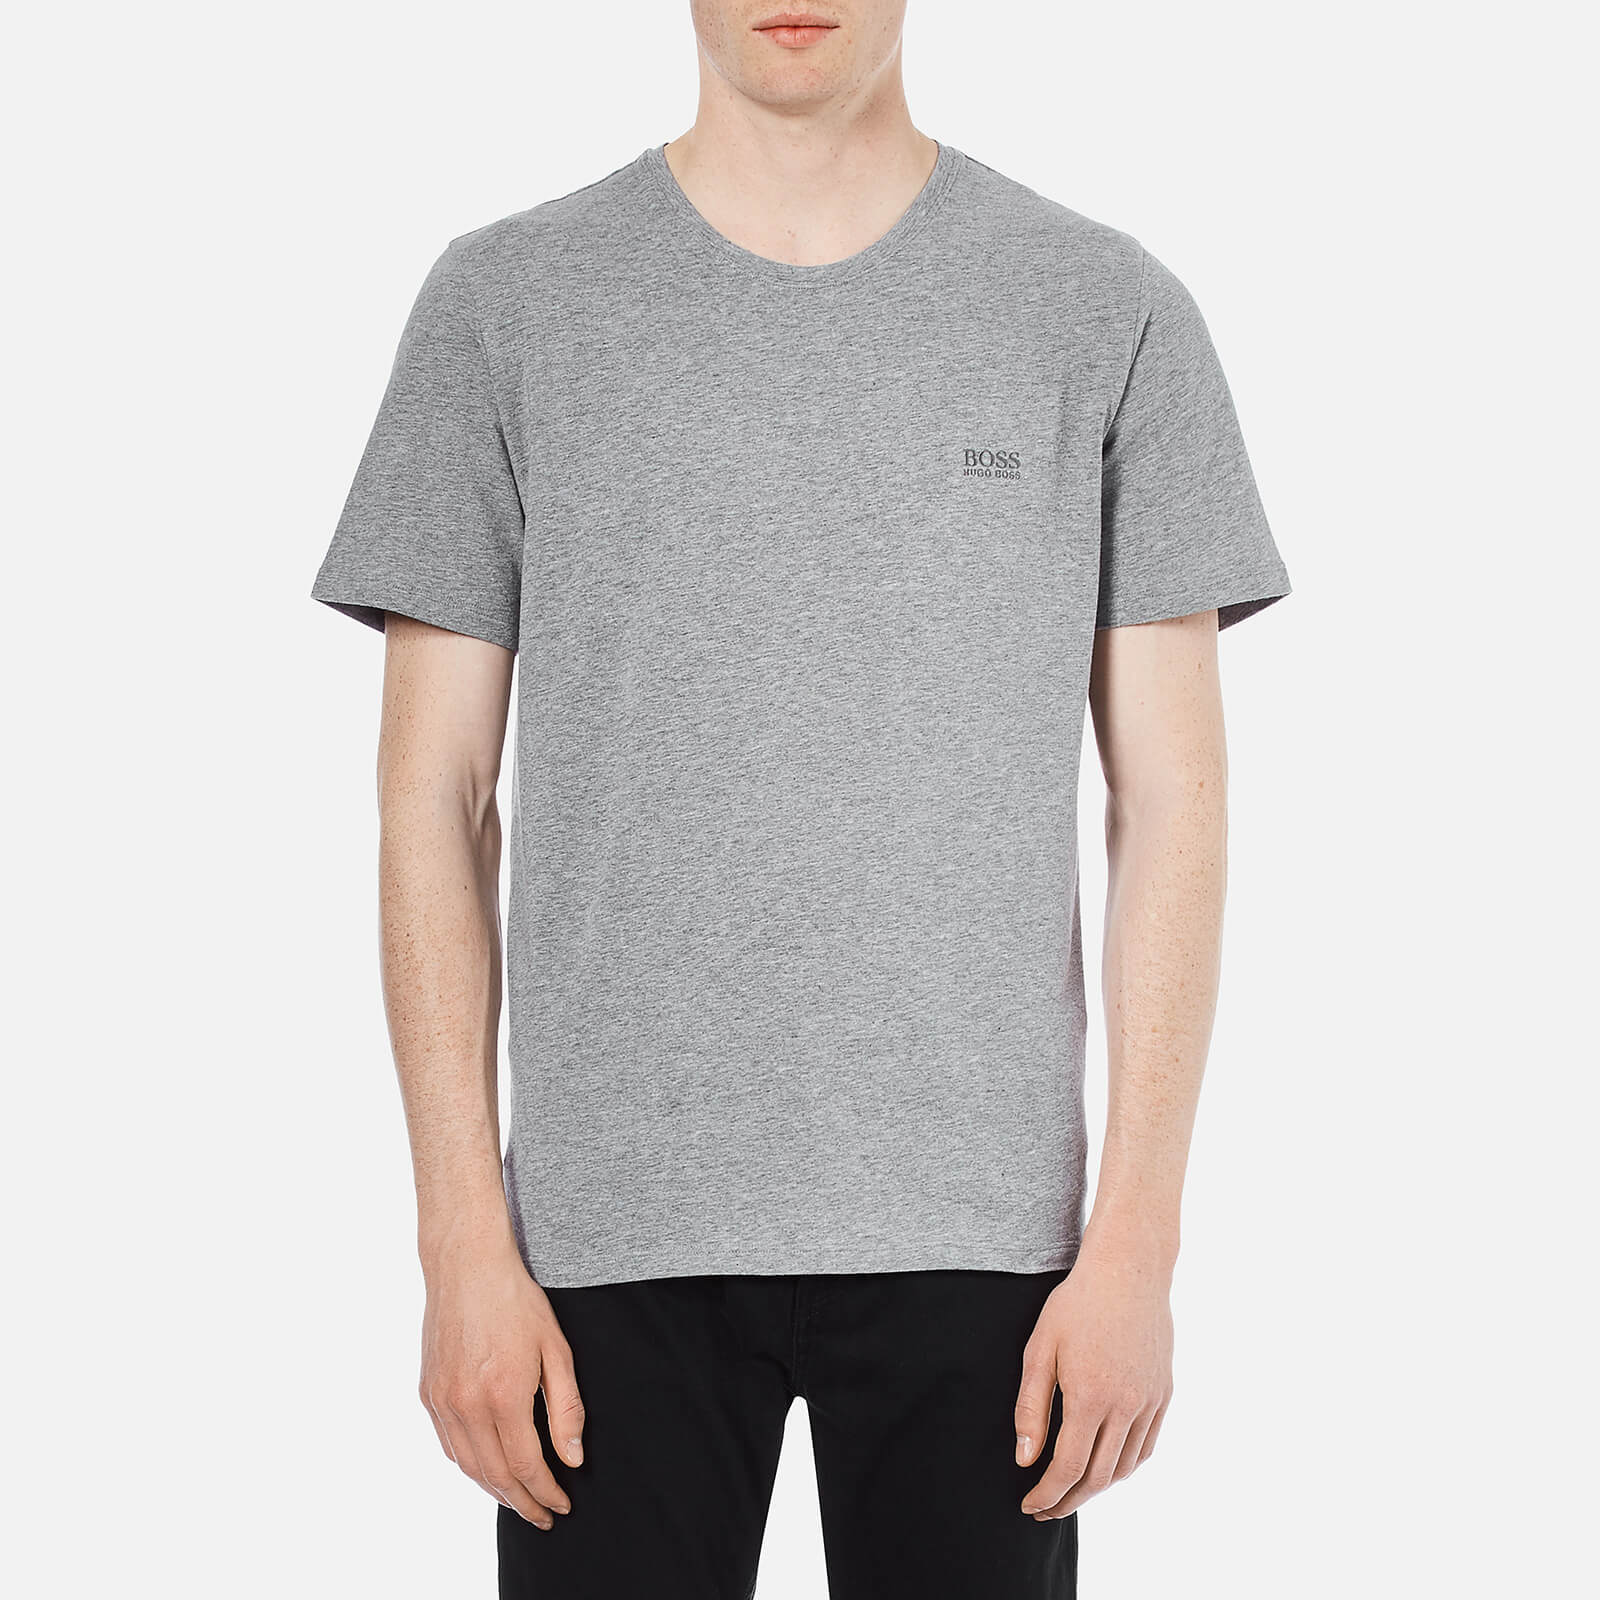 b970bf47d BOSS Hugo Boss Men's Crew Neck Small Logo T-Shirt - Grey - Free UK Delivery  over £50